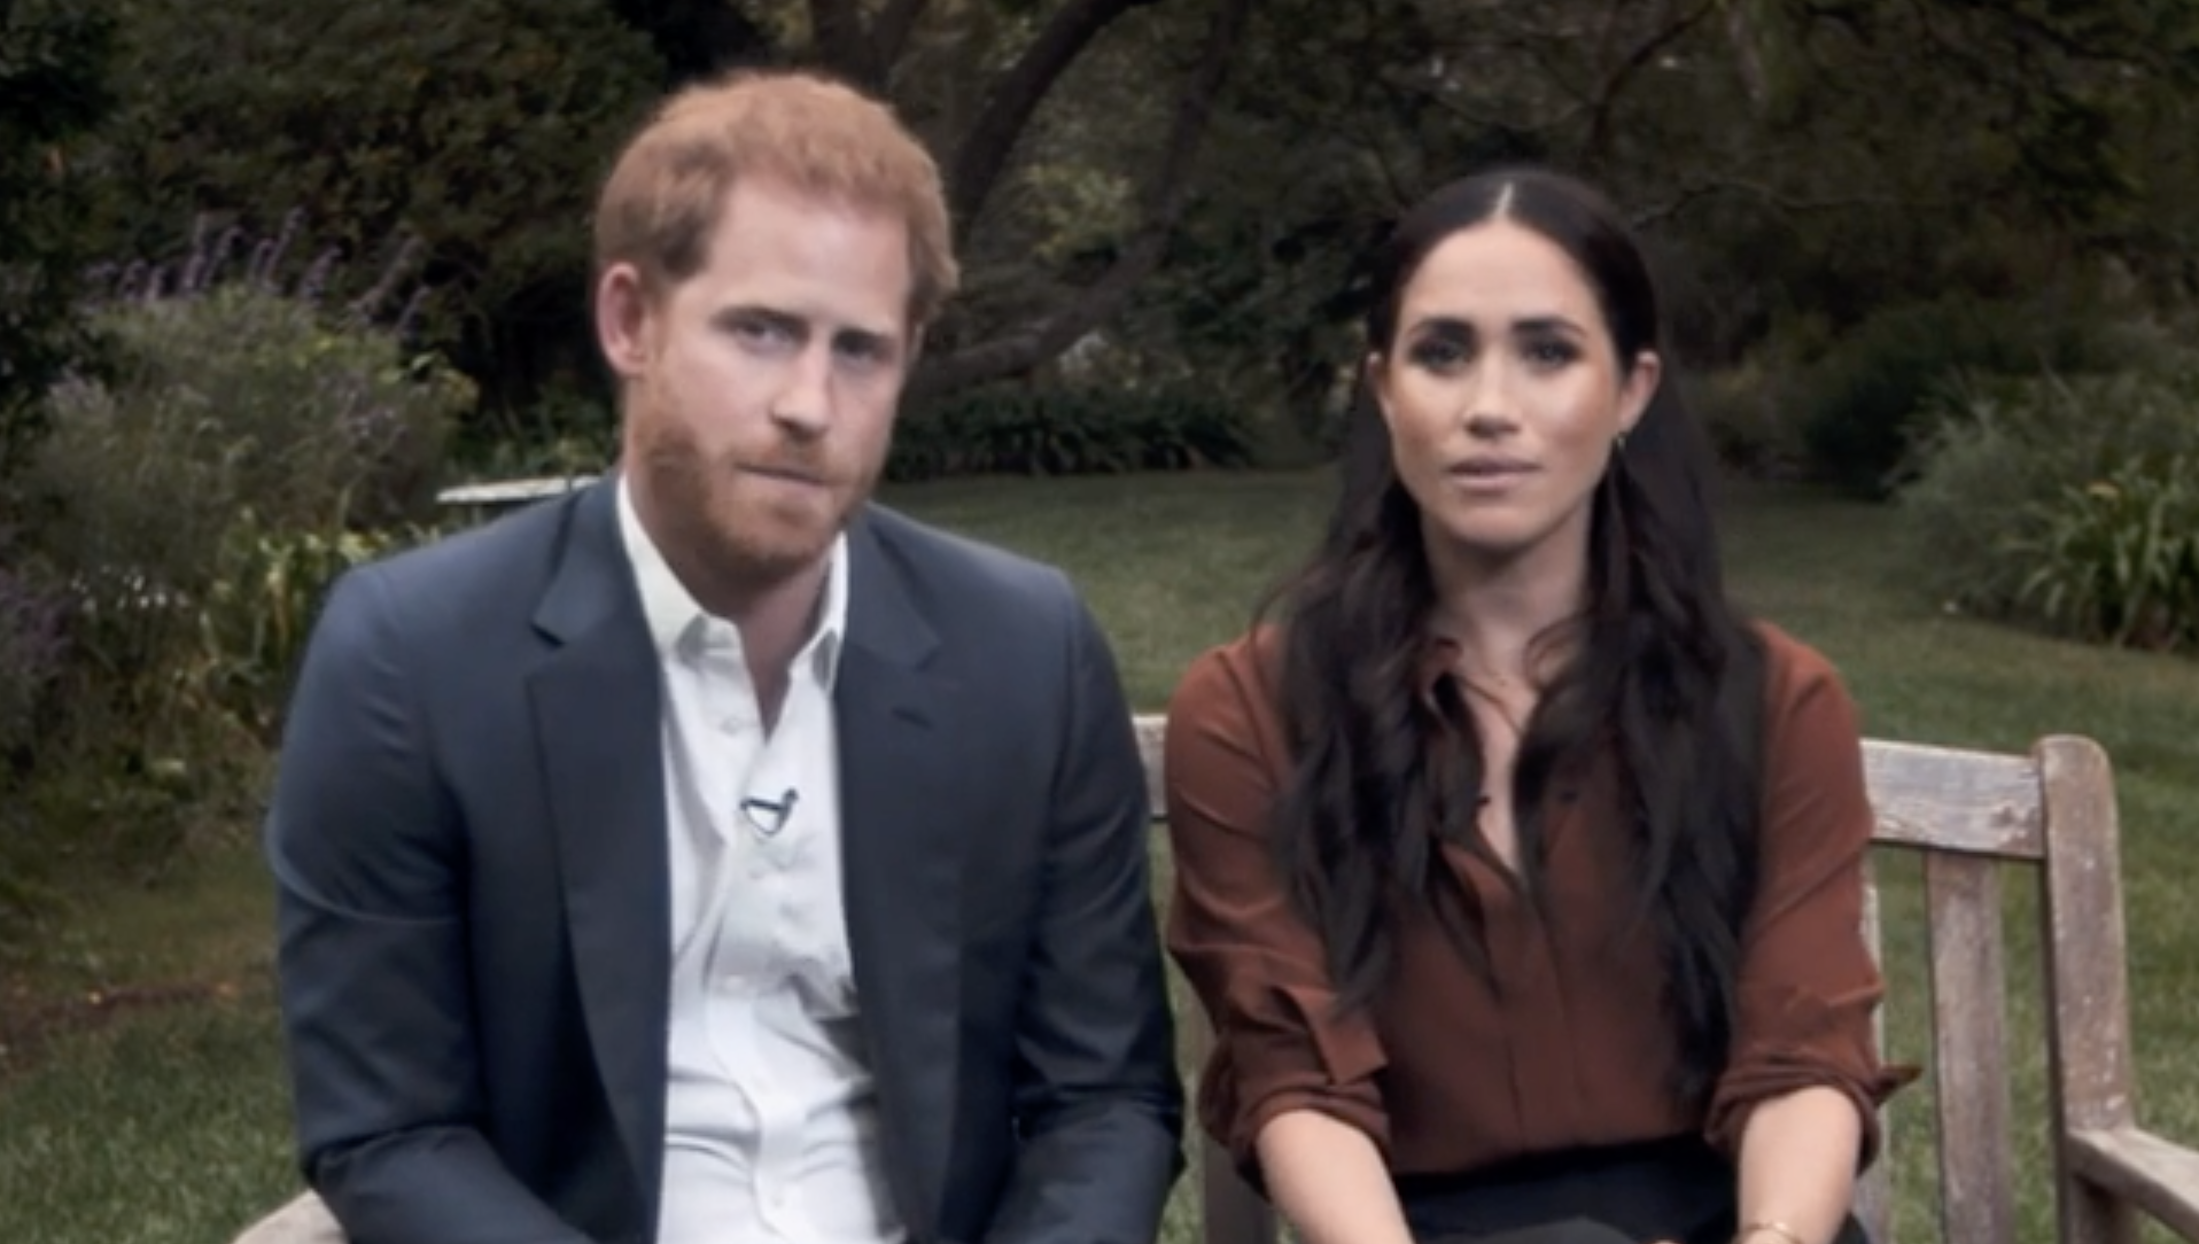 Prince Harry Meghan Markle - Social